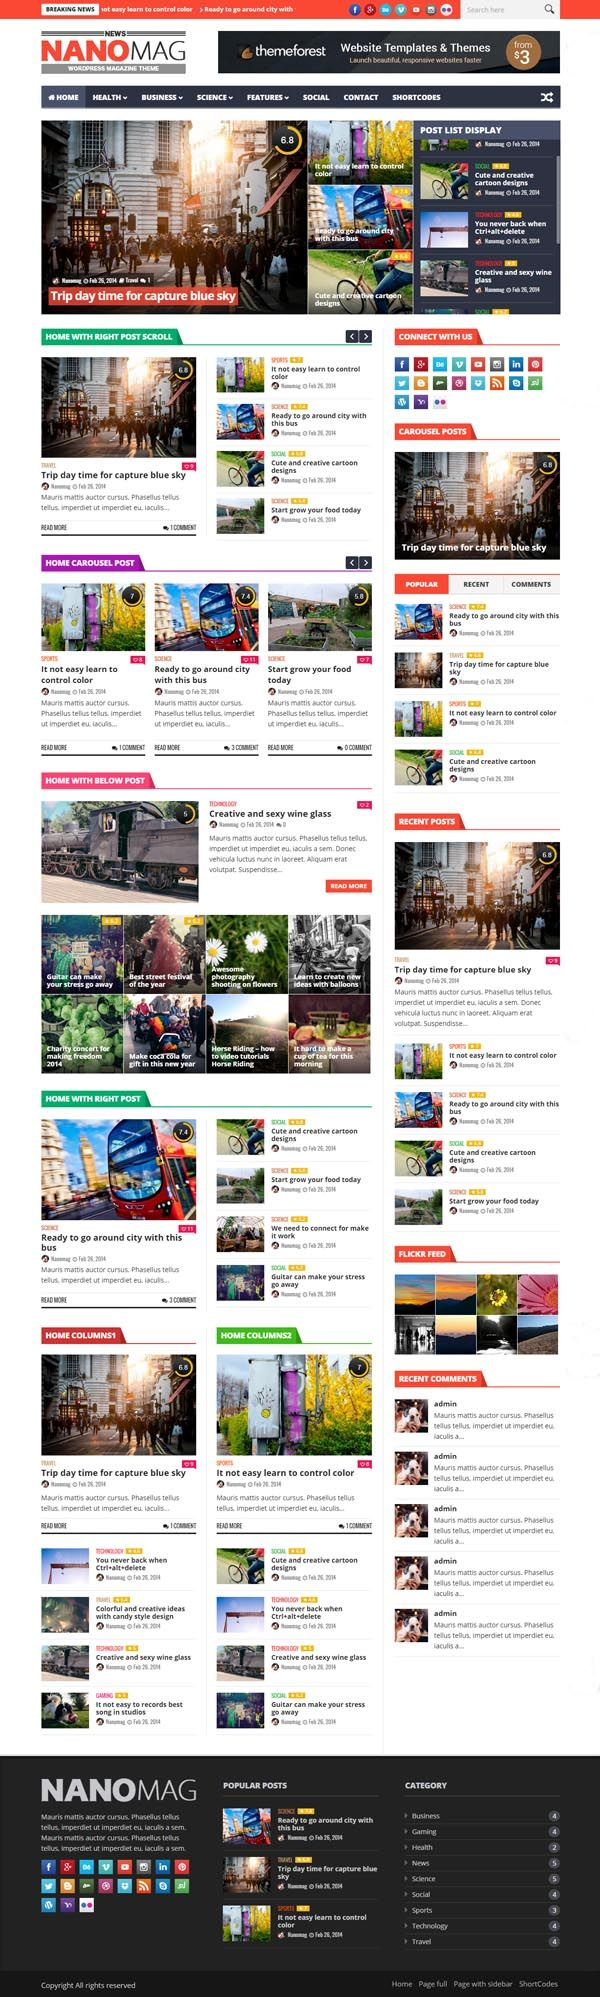 NanoMag - Responsive WordPress Magazine Theme #wordpressthemes #html5templates…